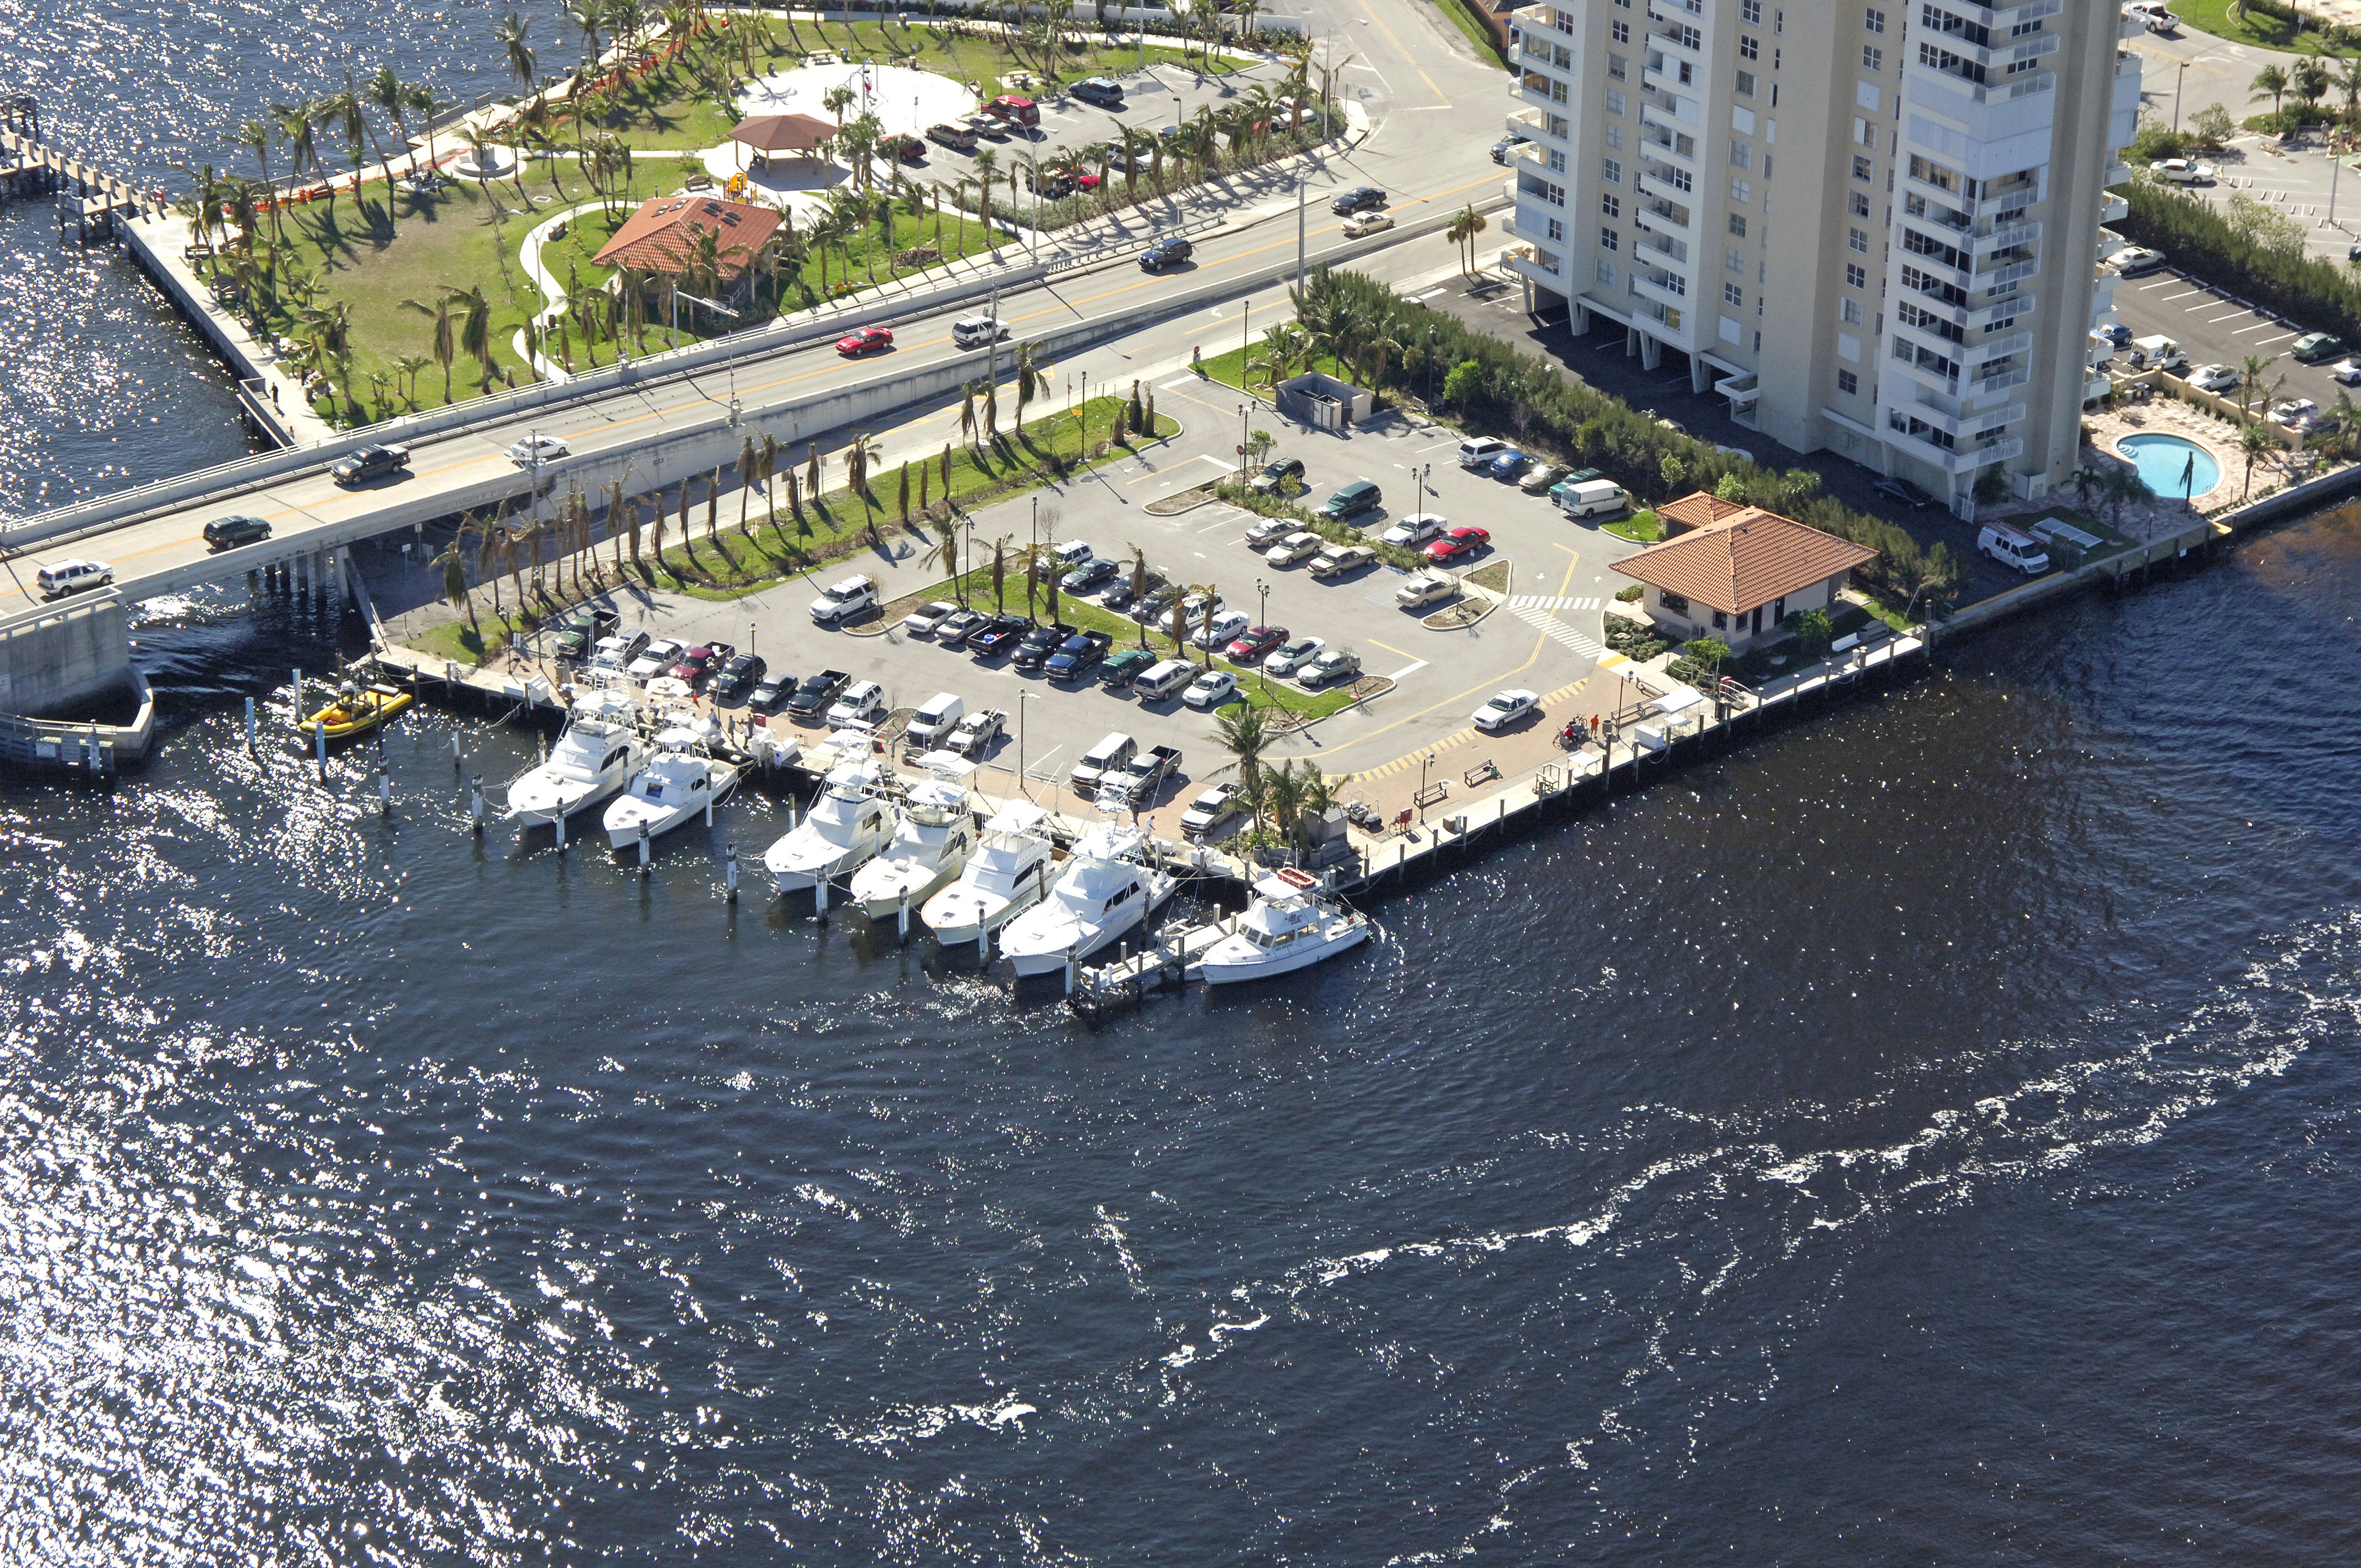 Hillsboro inlet marina private in pompano beach fl united states hillsboro inlet marina private in pompano beach fl united states marina reviews phone number marinas geenschuldenfo Images